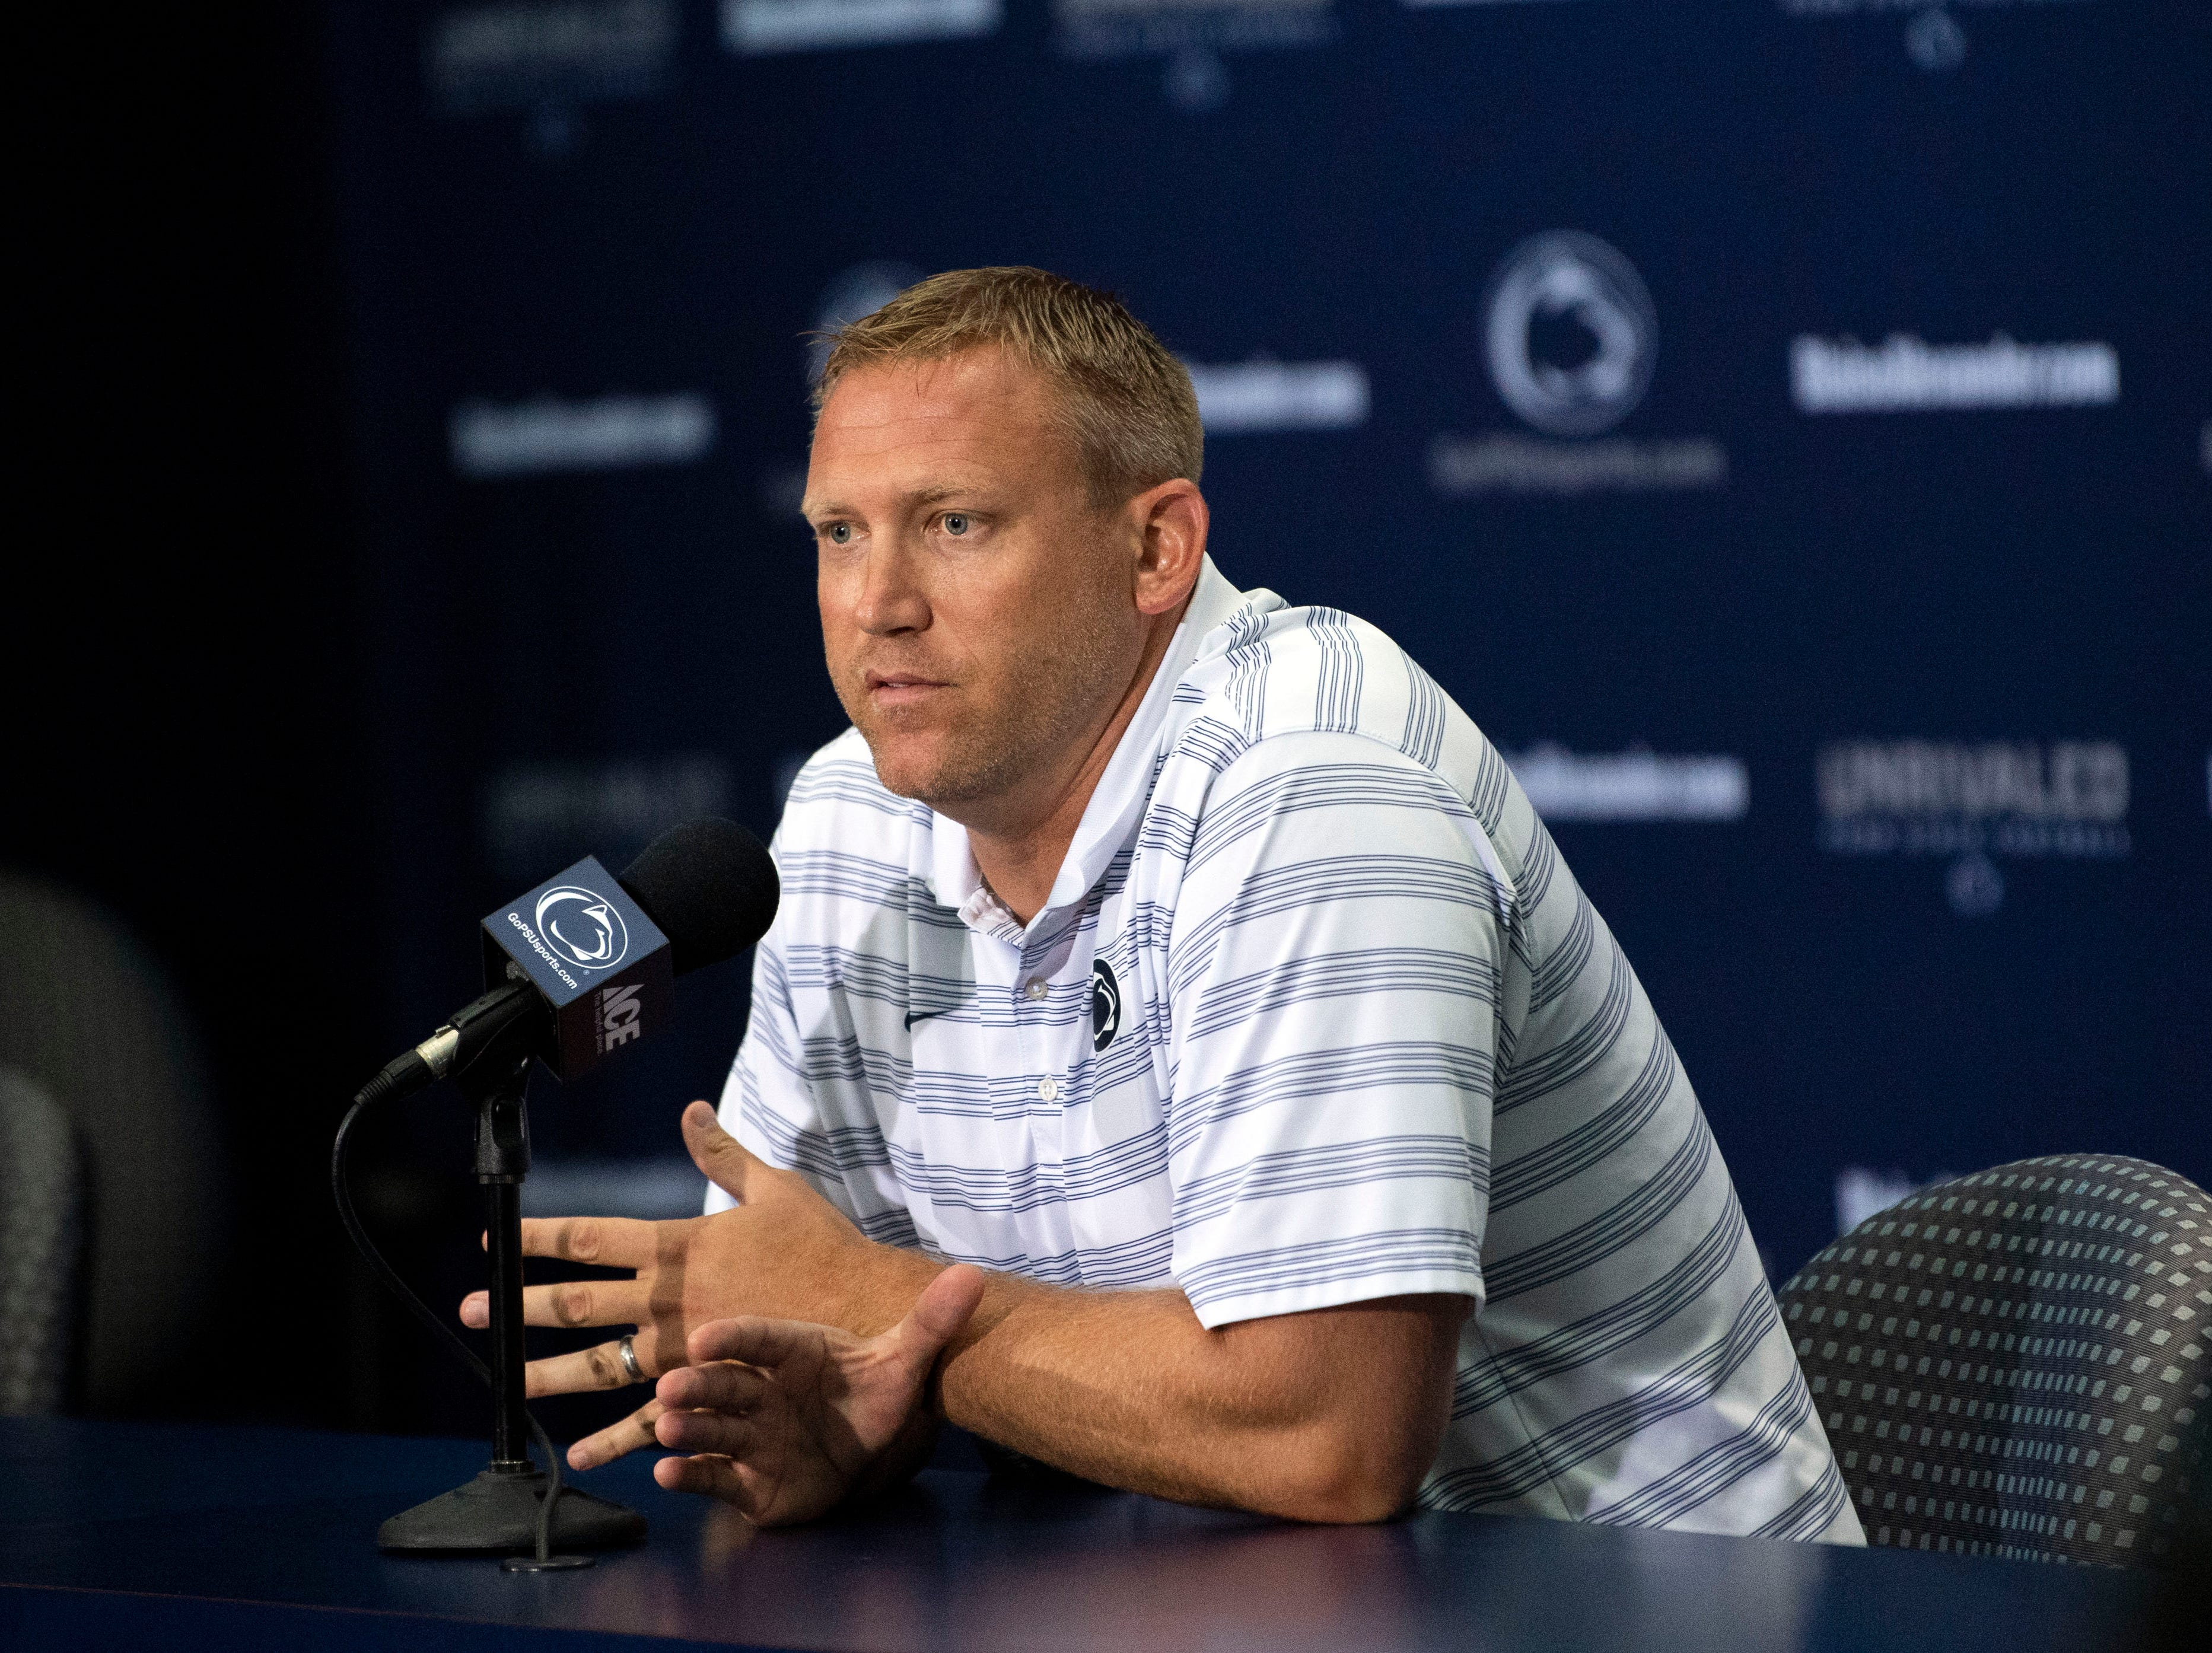 Penn State offensive coordinator and quarterbacks coach Ricky Rahne answers questions about the upcoming season during media day at Beaver Stadium on Saturday, August 4, 2018.